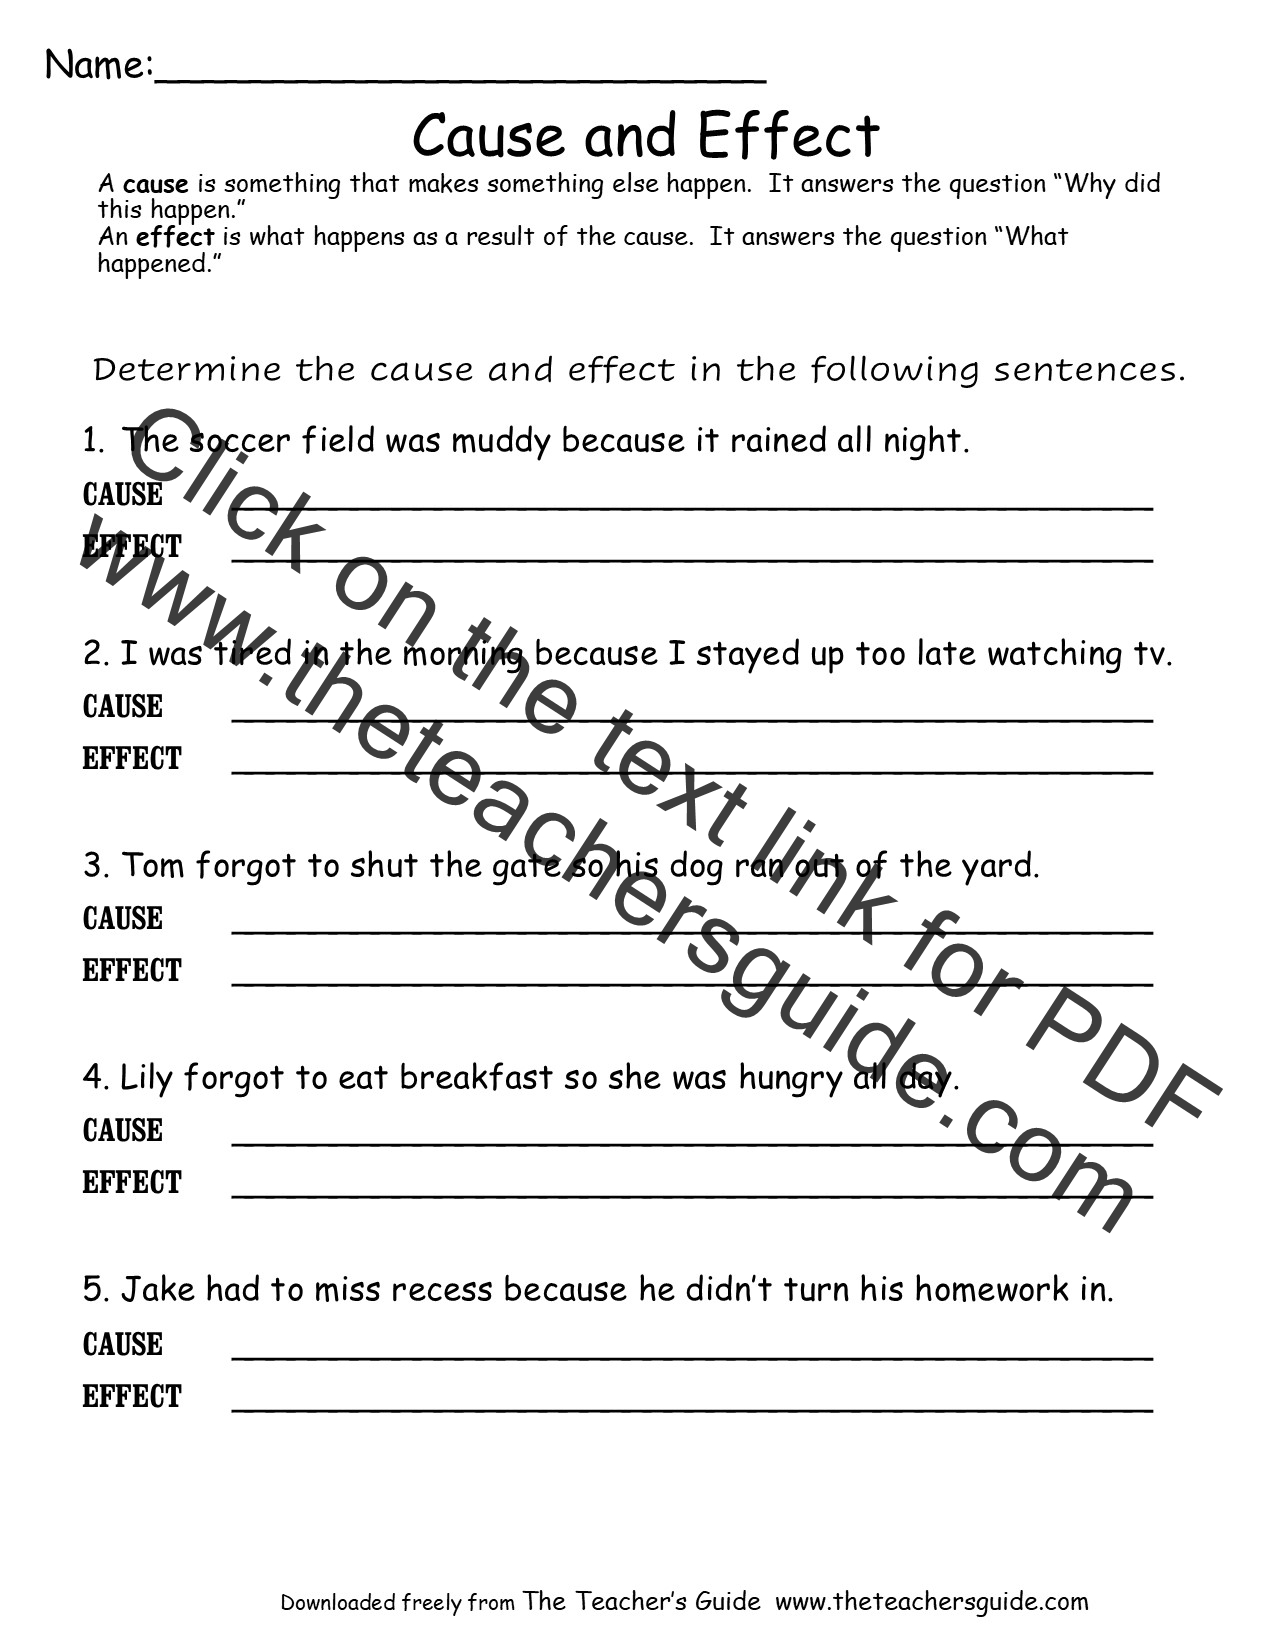 Worksheets  Cause and Effect Worksheets from The Teacher'